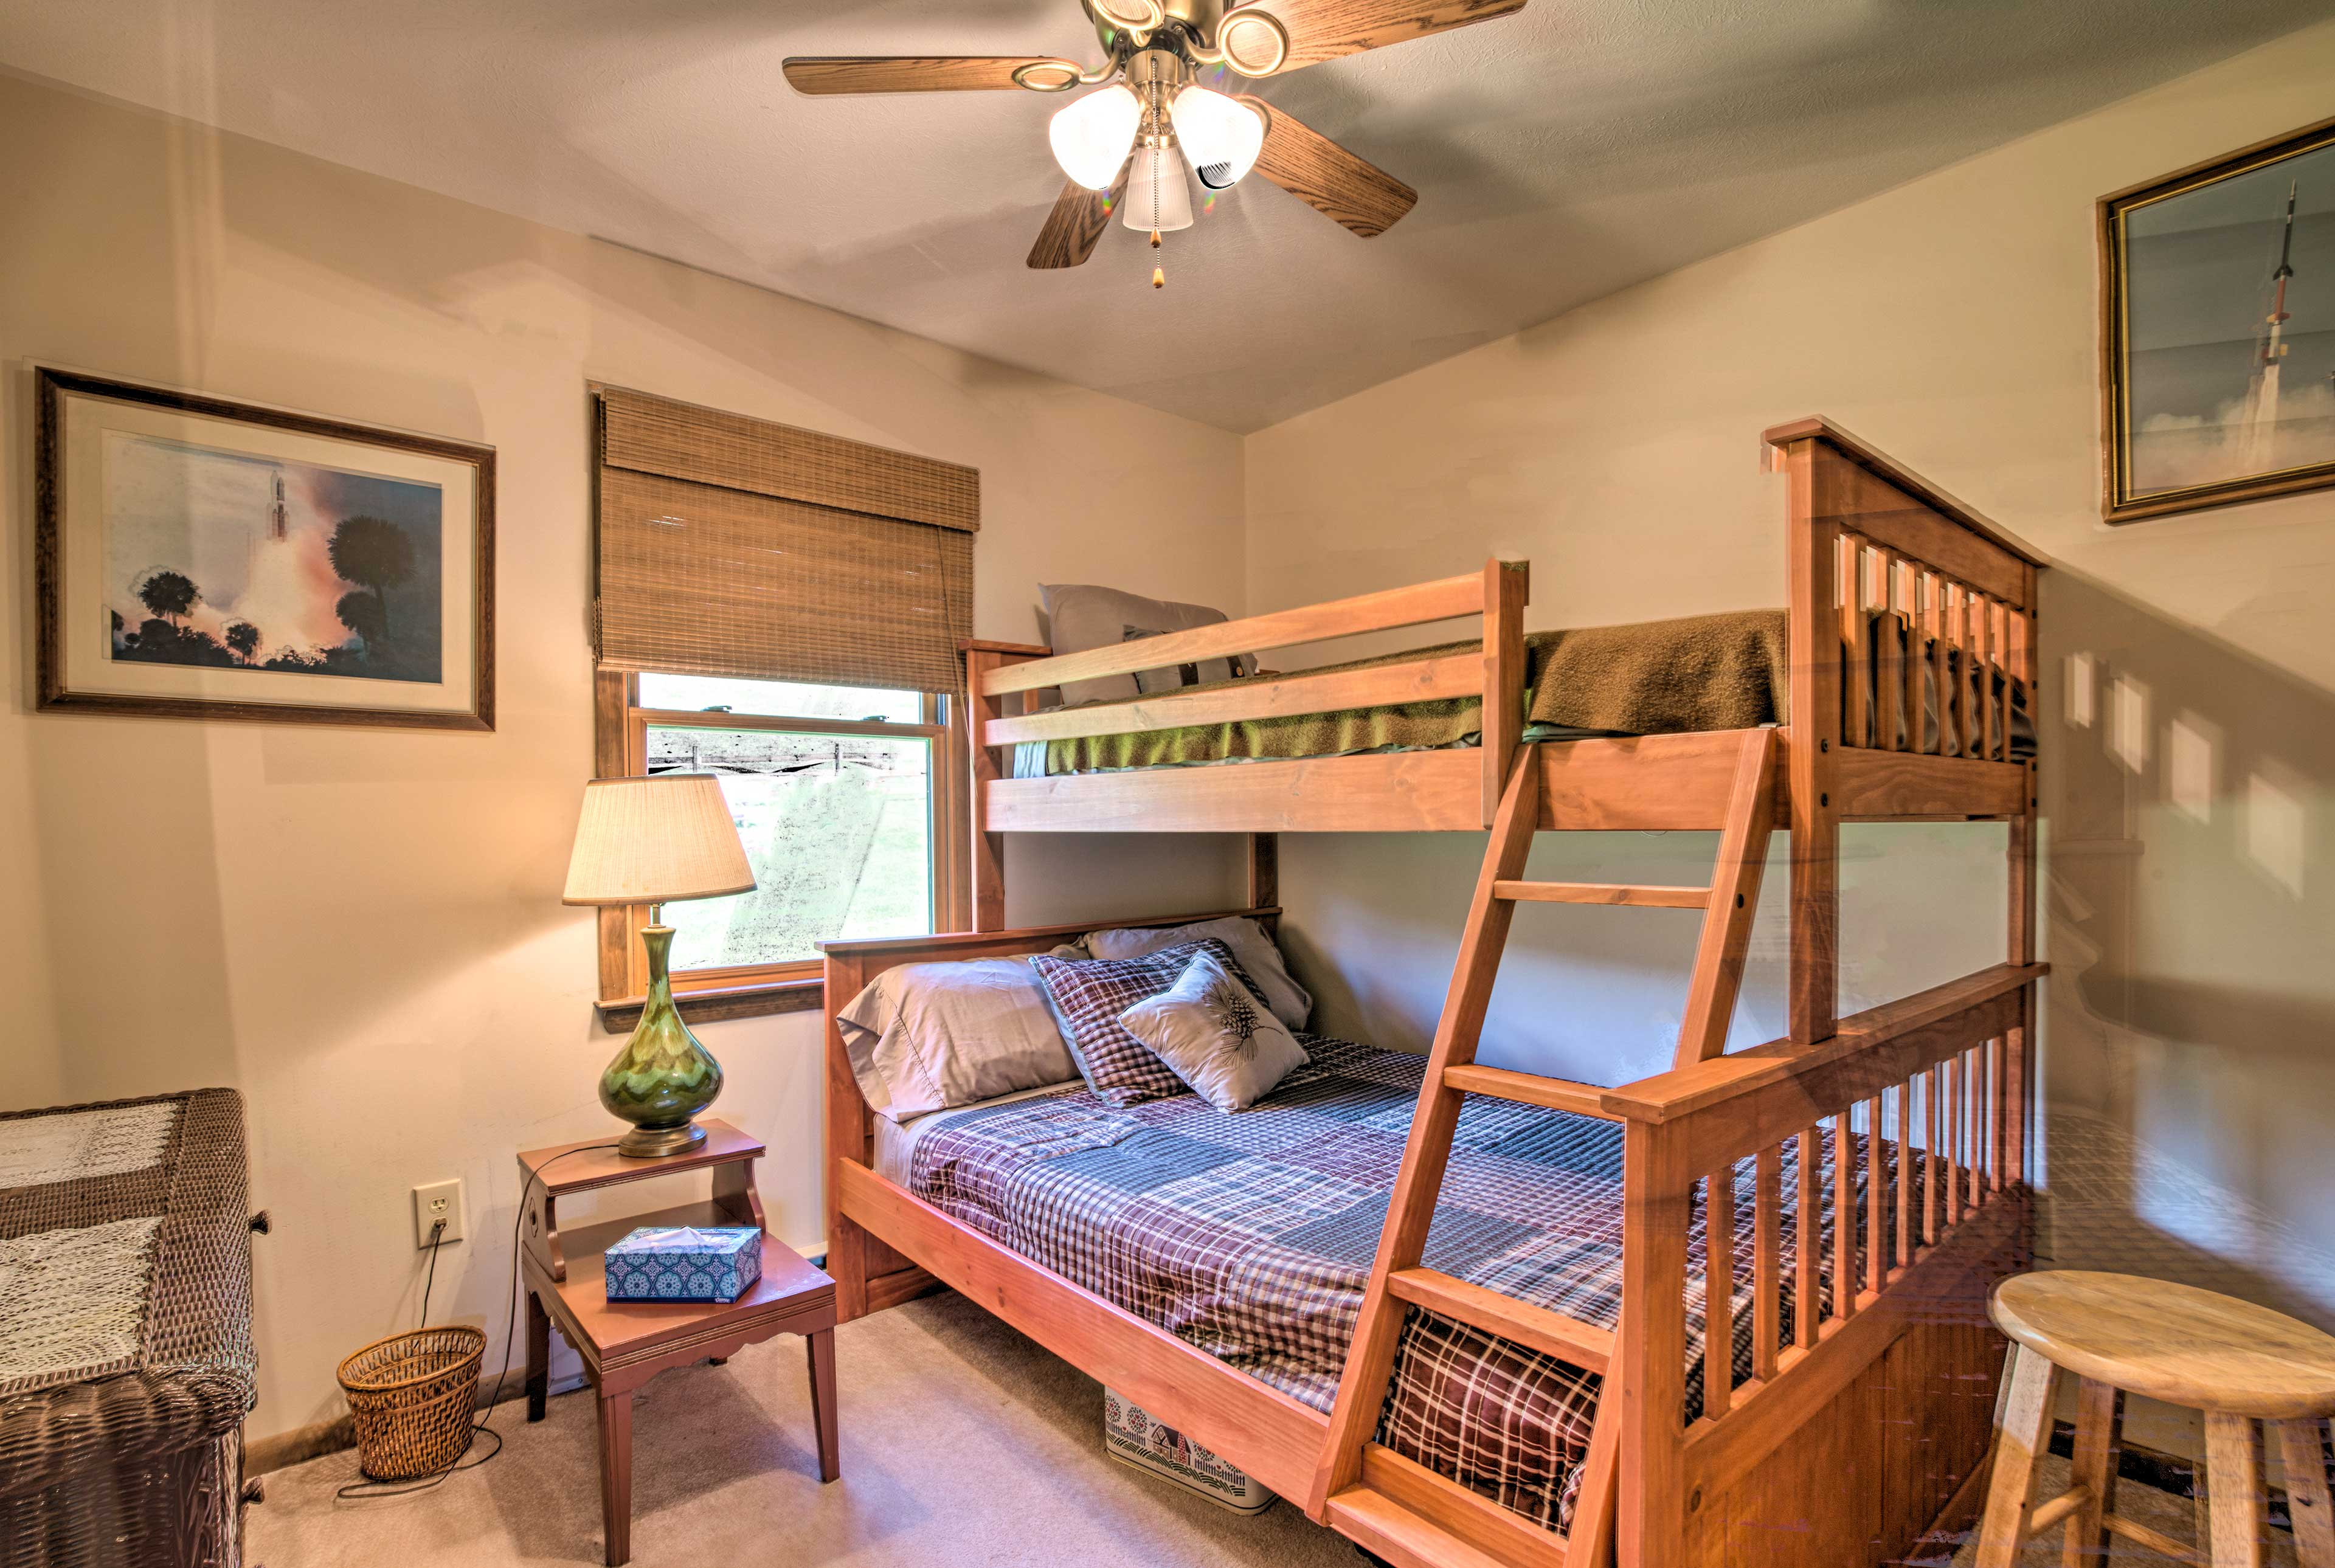 Three guests can comfortably sleep it in this bunk bed.